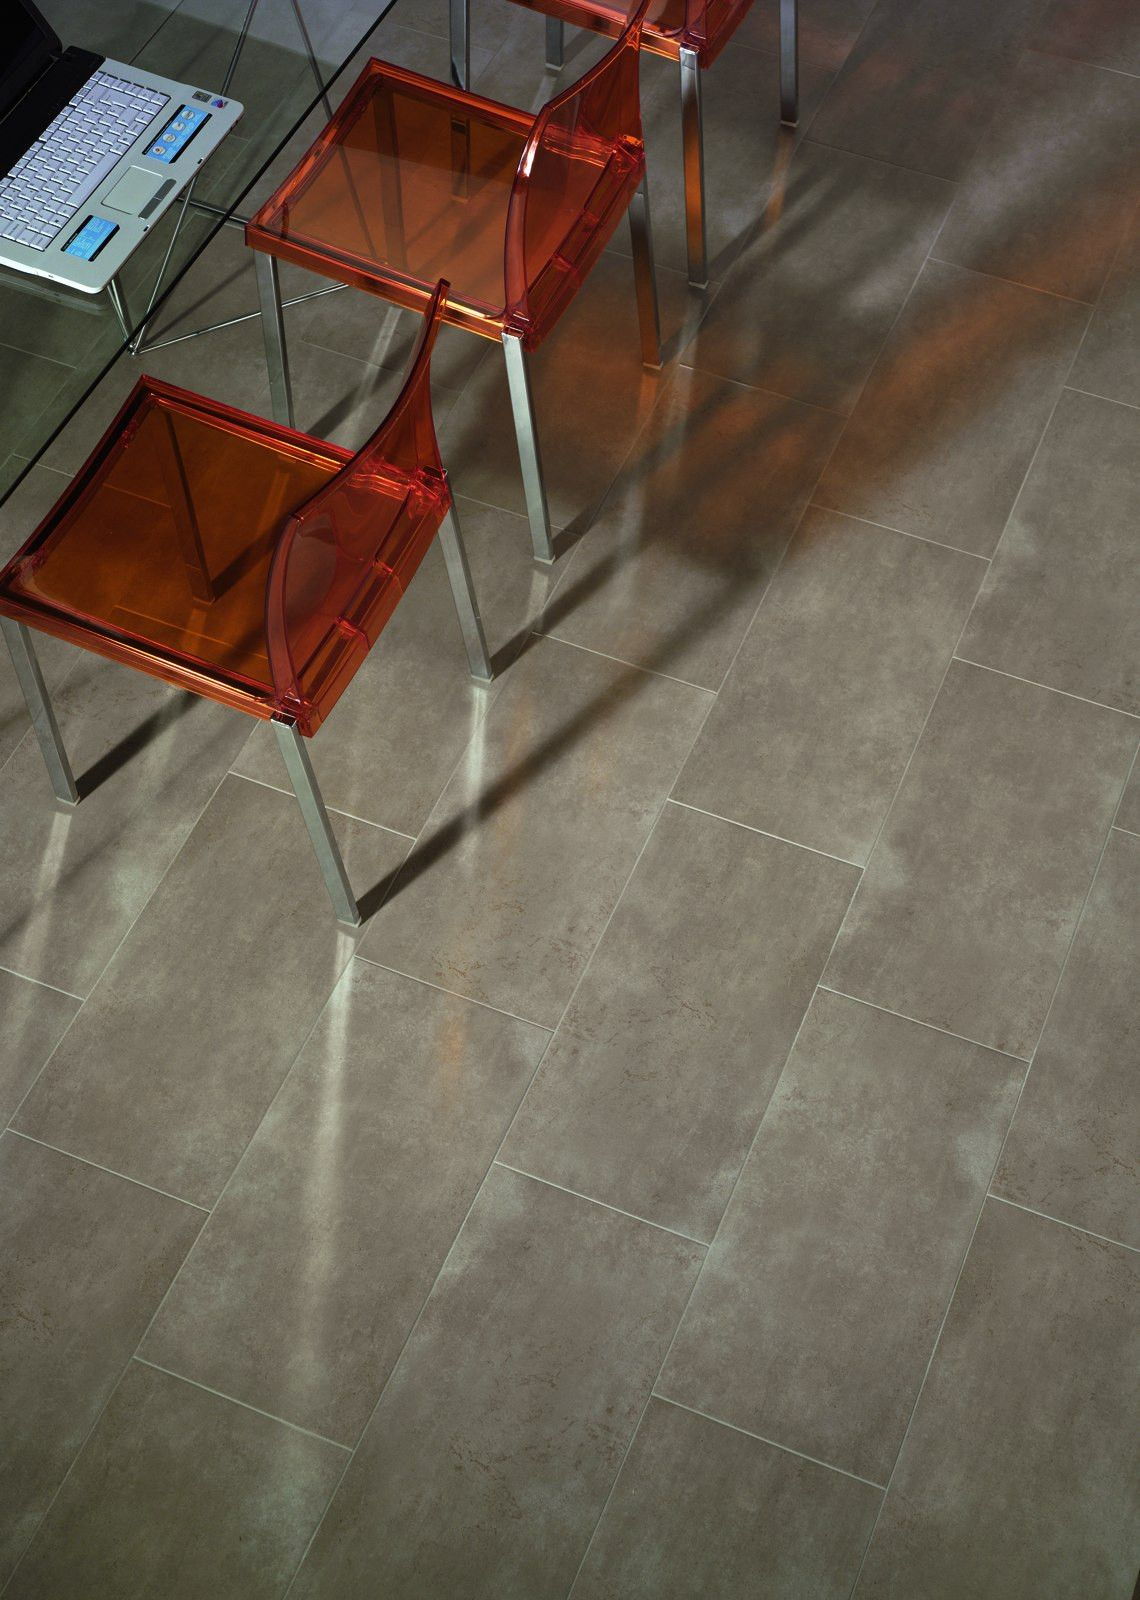 Marazzi concret smoke s 30x60 cm du82 feinsteinzeug available on all the porcelain stoneware flooring by marazzi concret at the best price guaranteed discover marazzi concret smoke s cm cement effect dailygadgetfo Choice Image